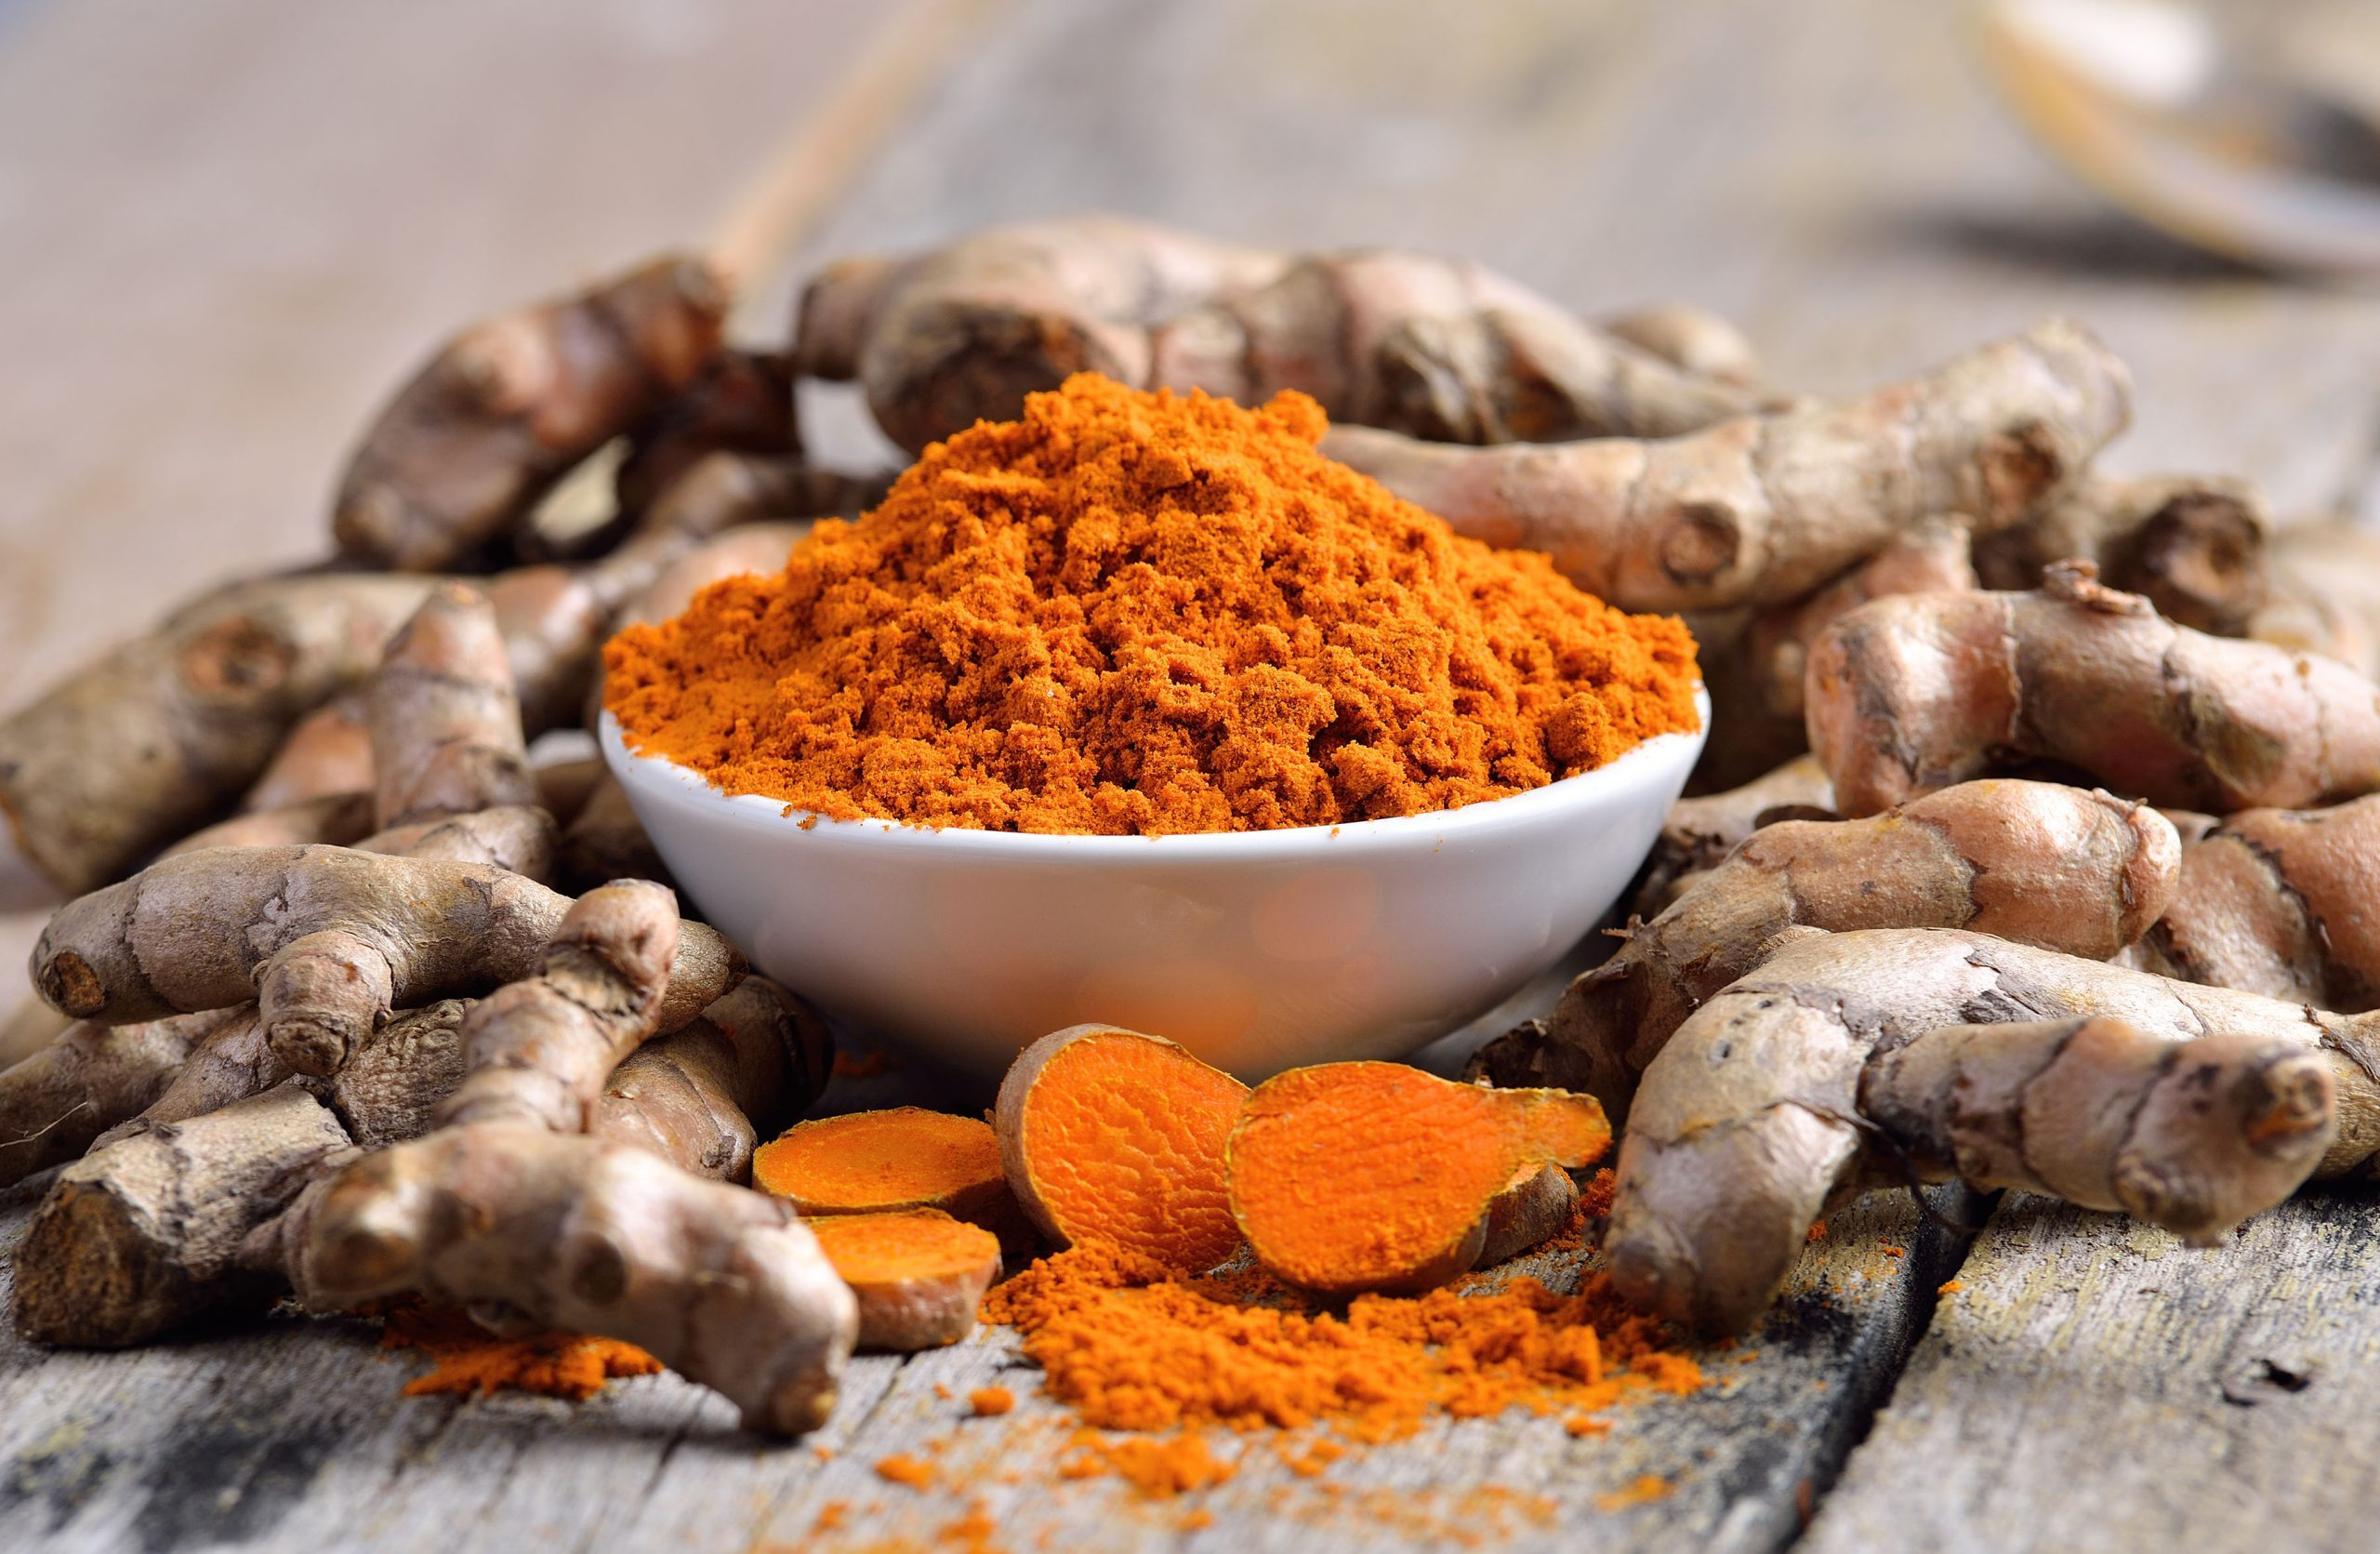 Top 5 Cancer Fighting Foods To Add To Your Diet